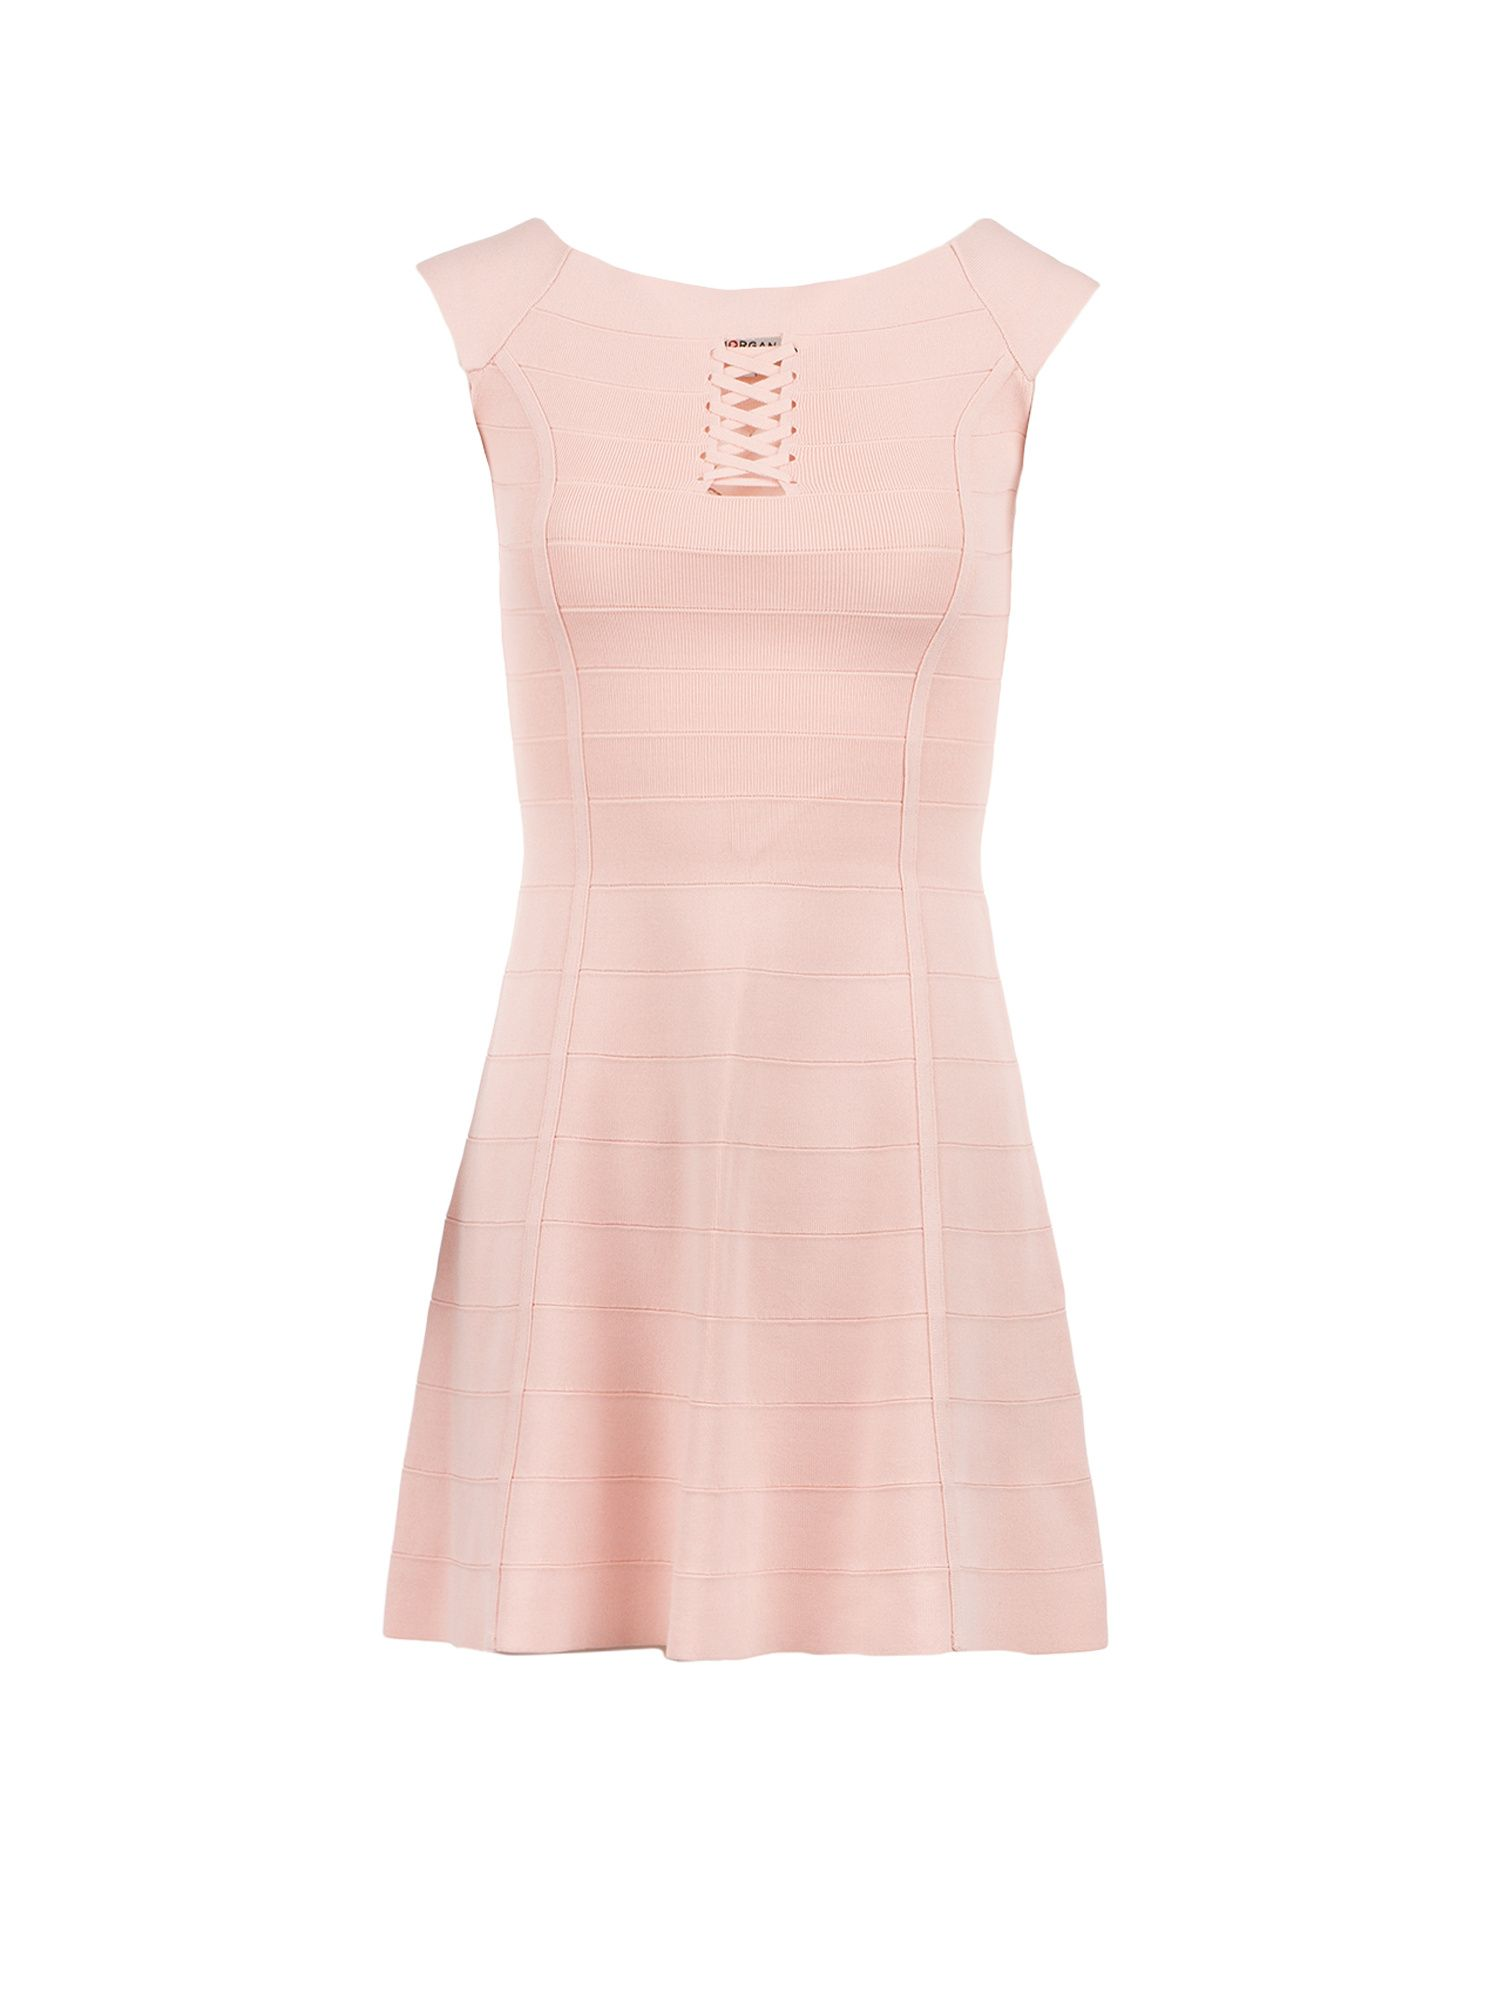 Morgan Lace Up Bandage Knit Dress, Light Pink